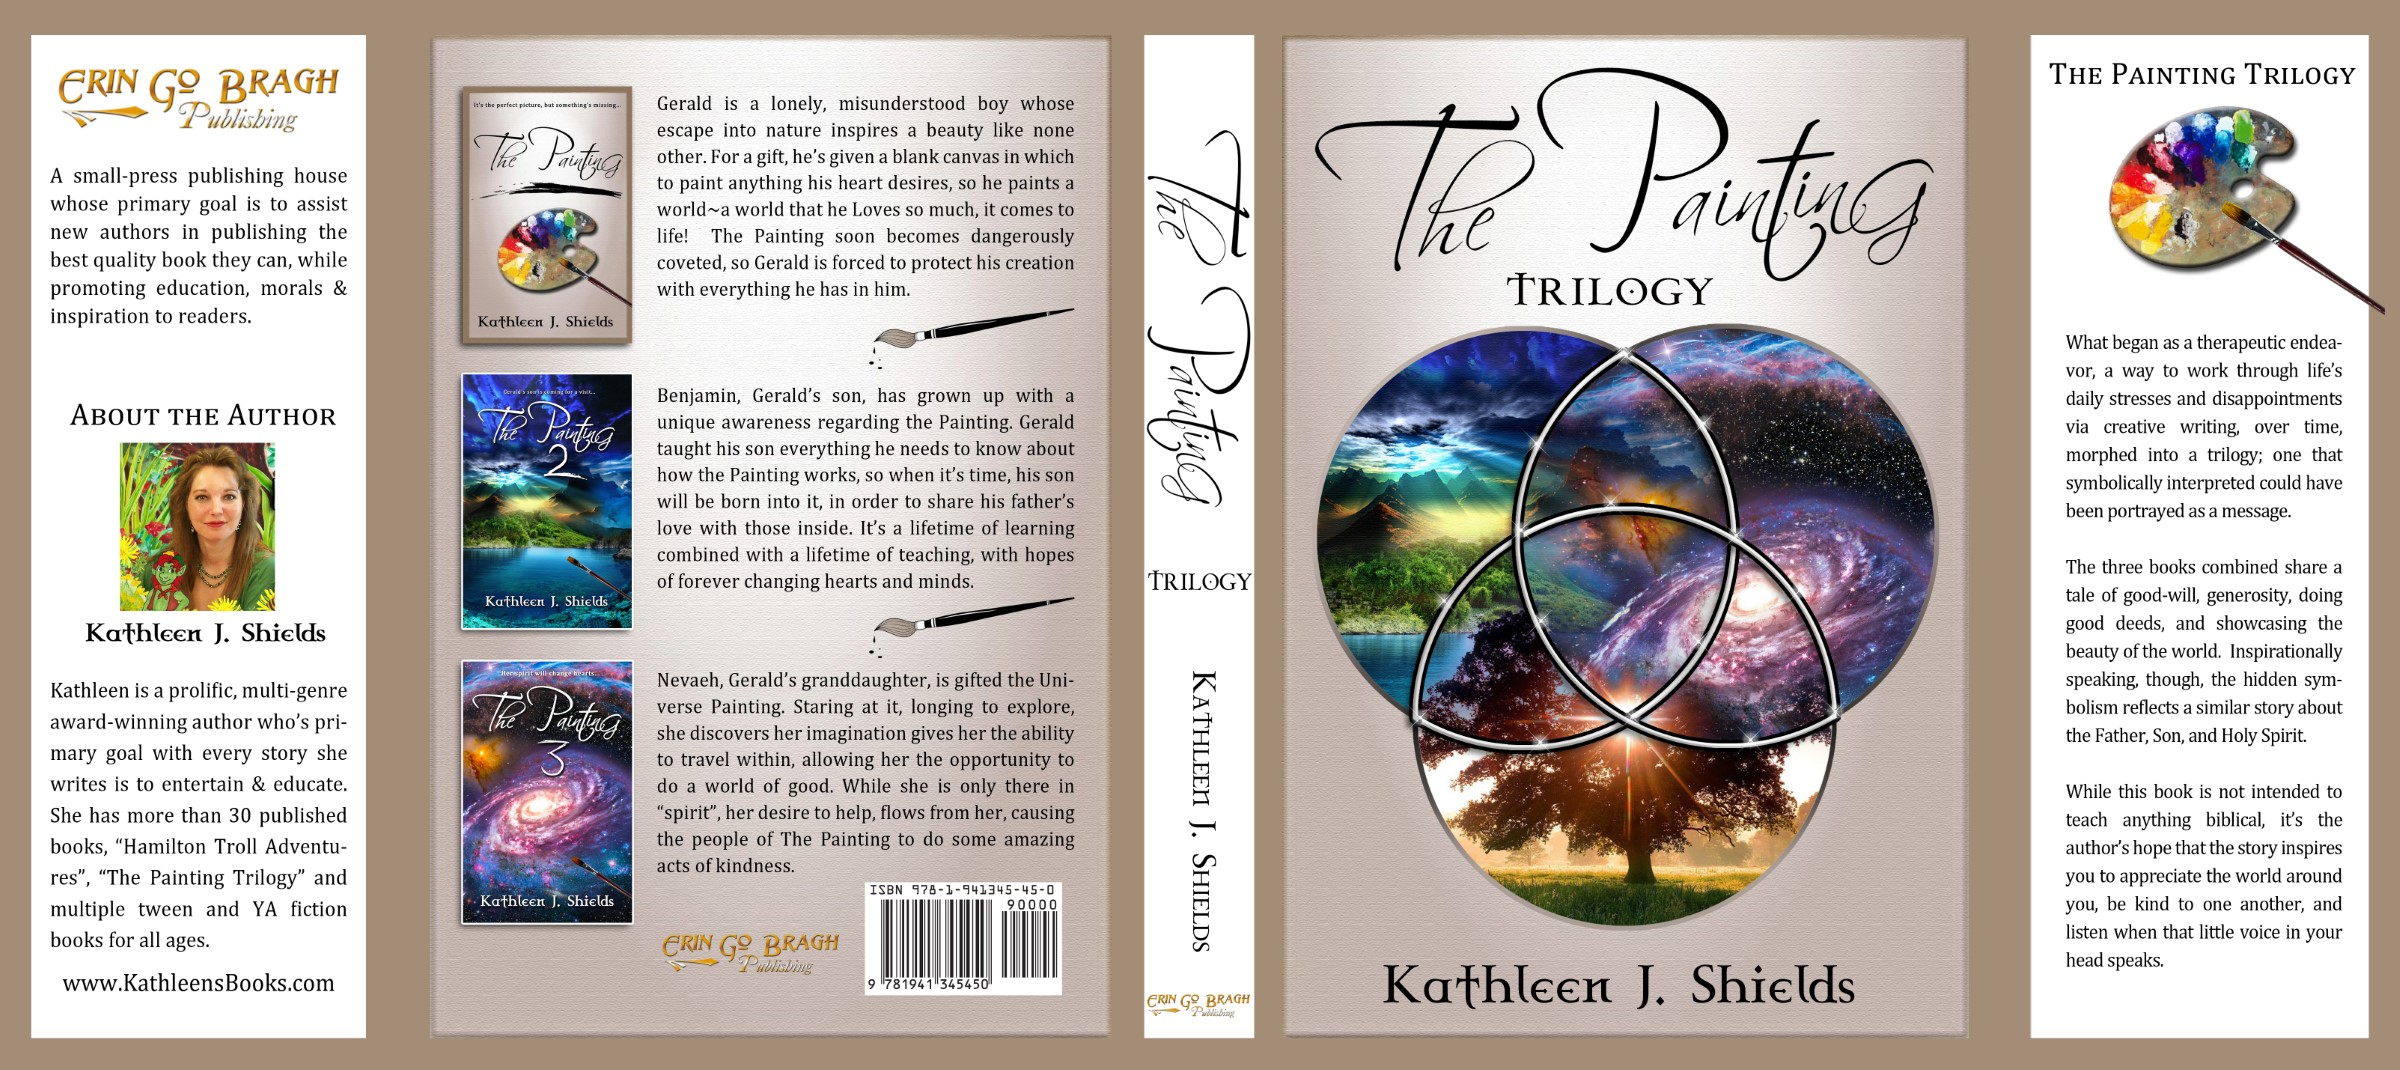 The Painting Trilogy Hardback book by author Kathleen J. Shields